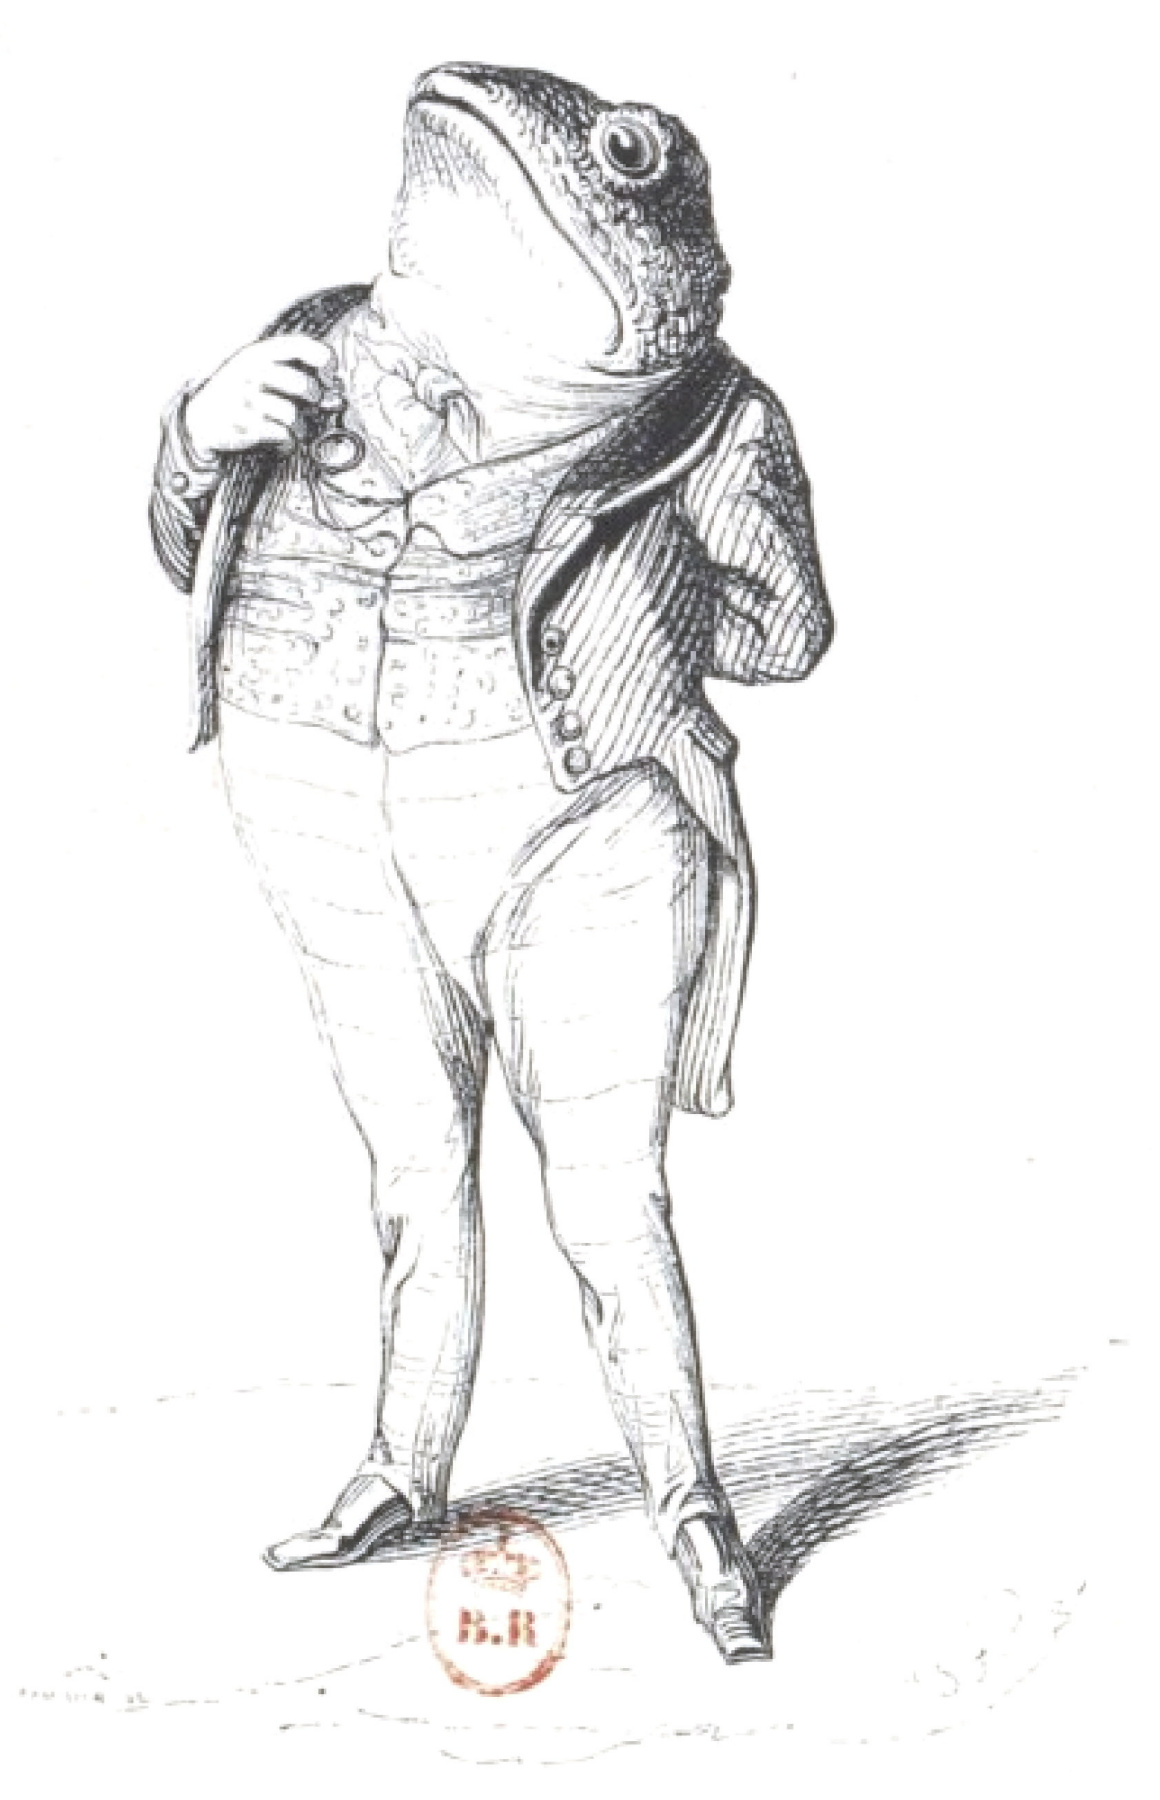 "Jean Inias Isidore (Gerard) Granville. Toad: everyone owes his country! ""Scenes of public and private life of animals"""